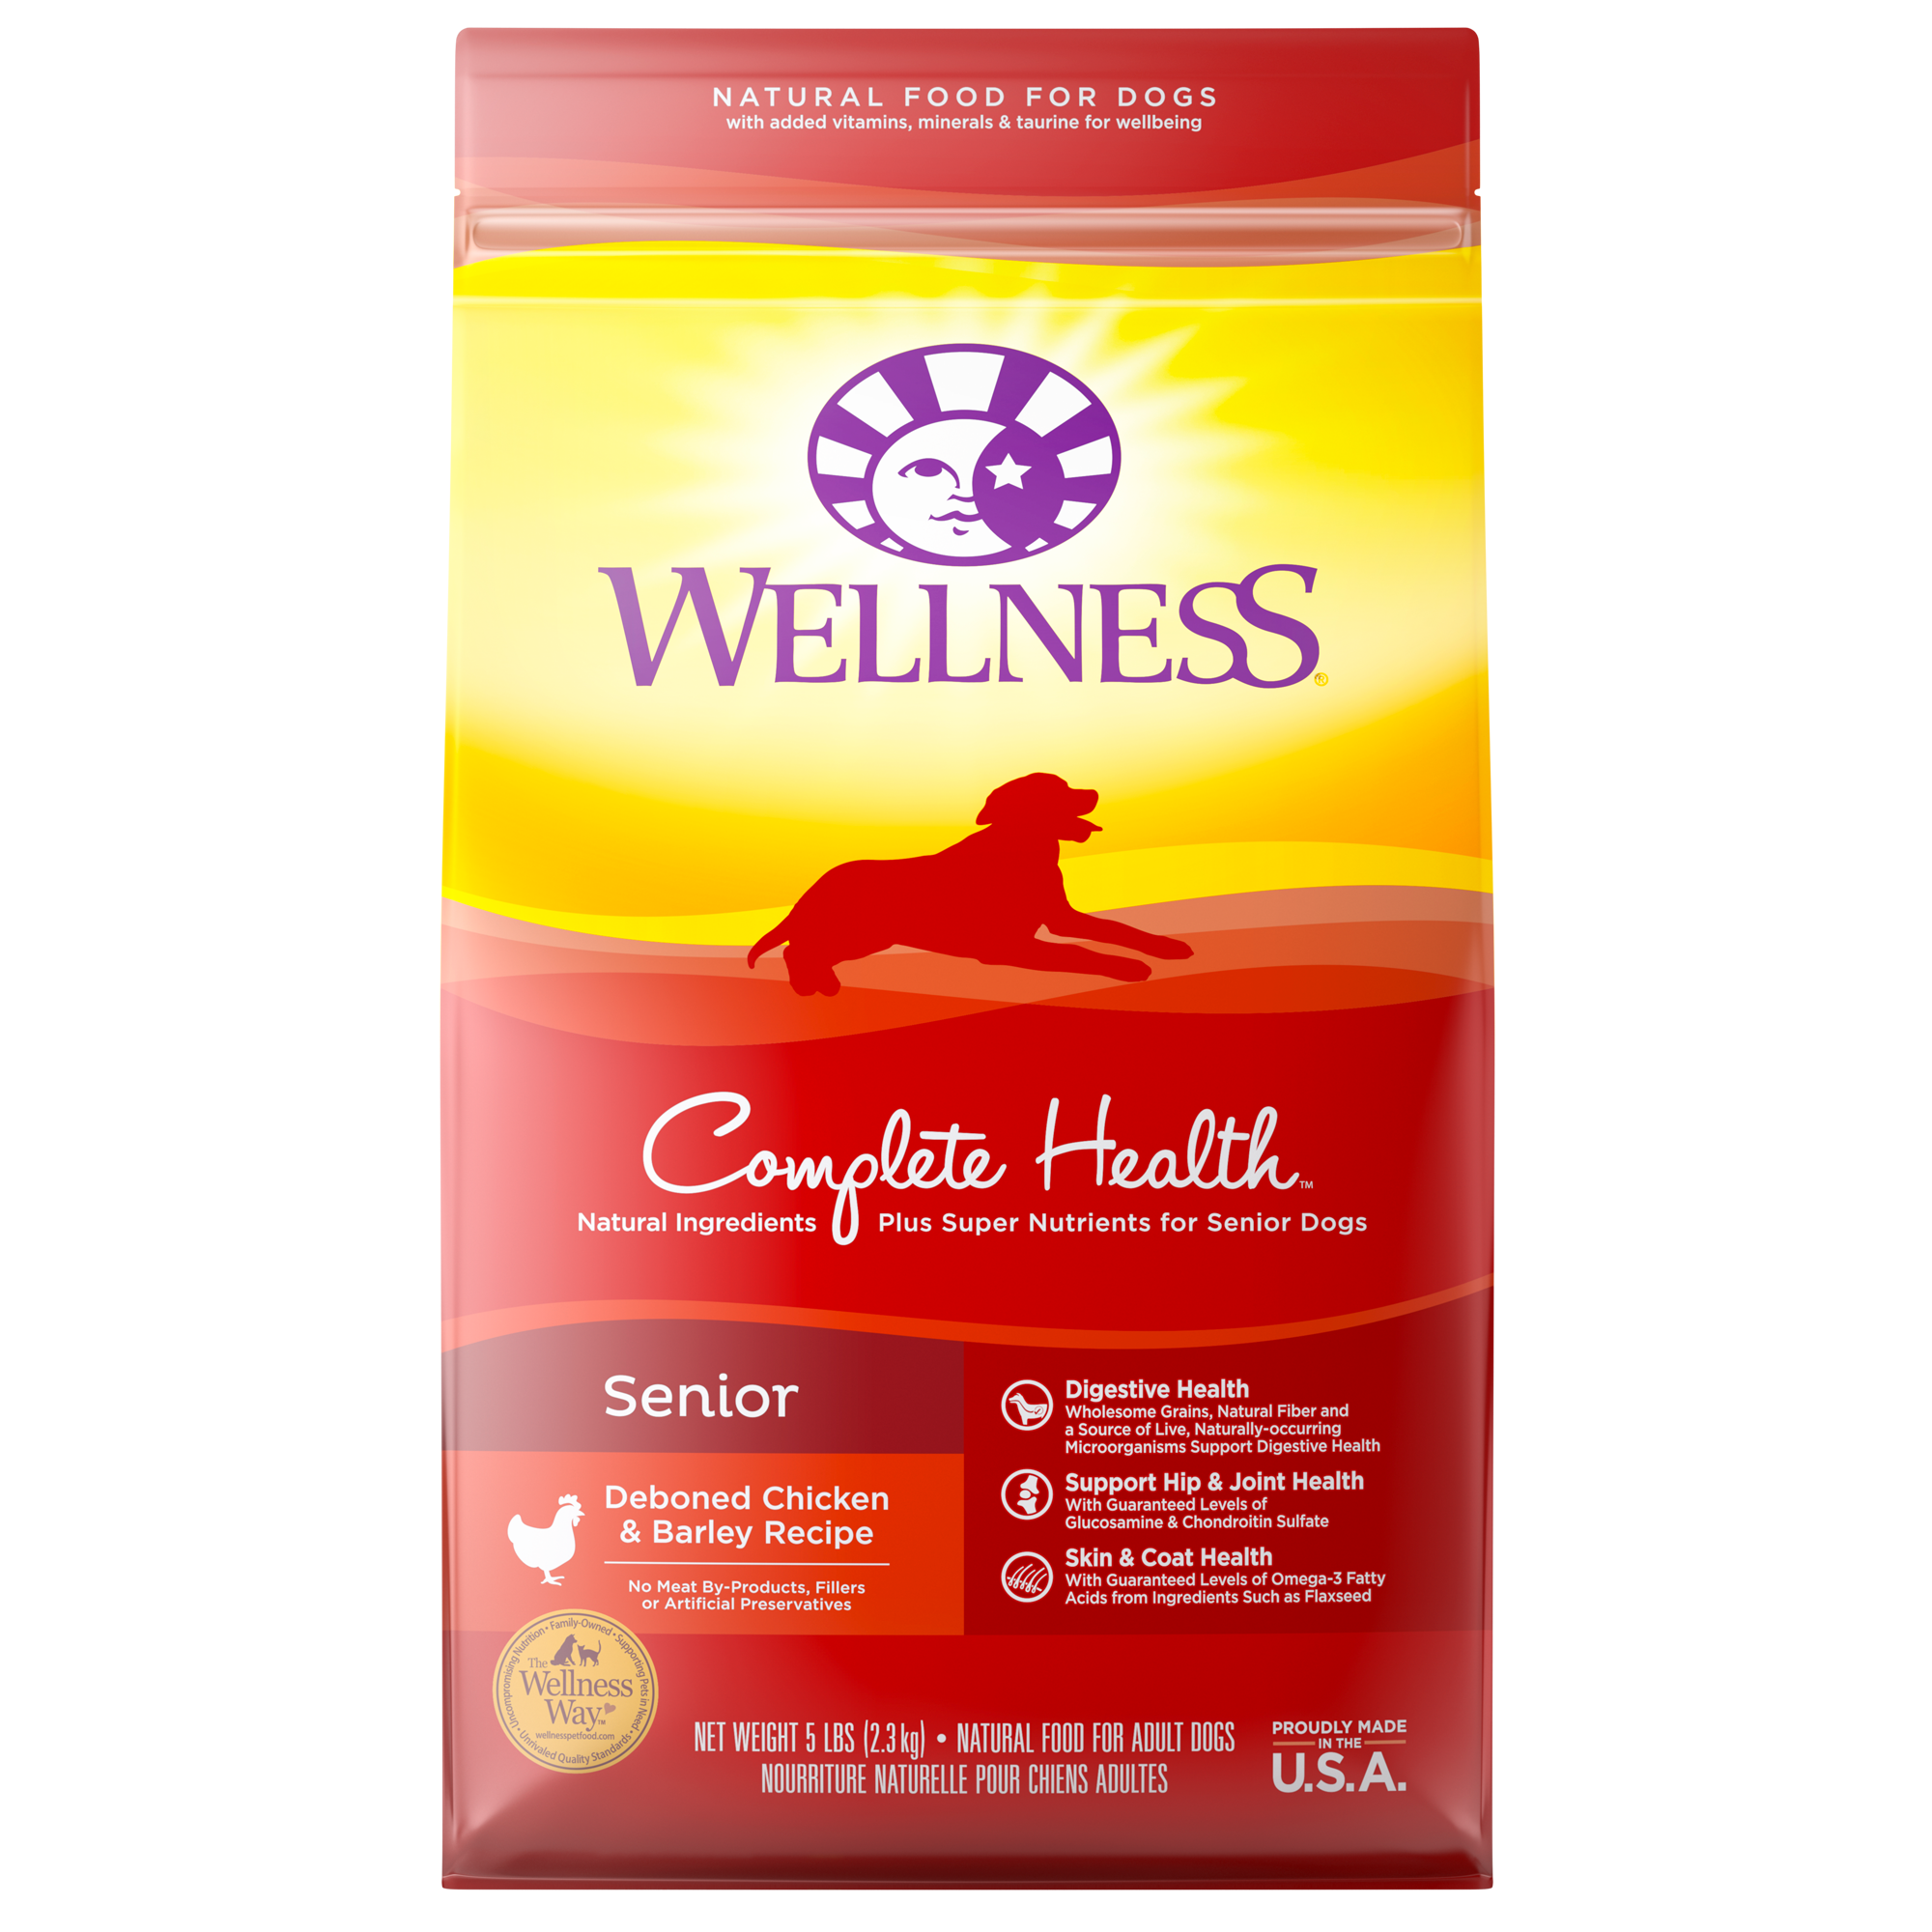 Wellness Dog Food Buy Australia